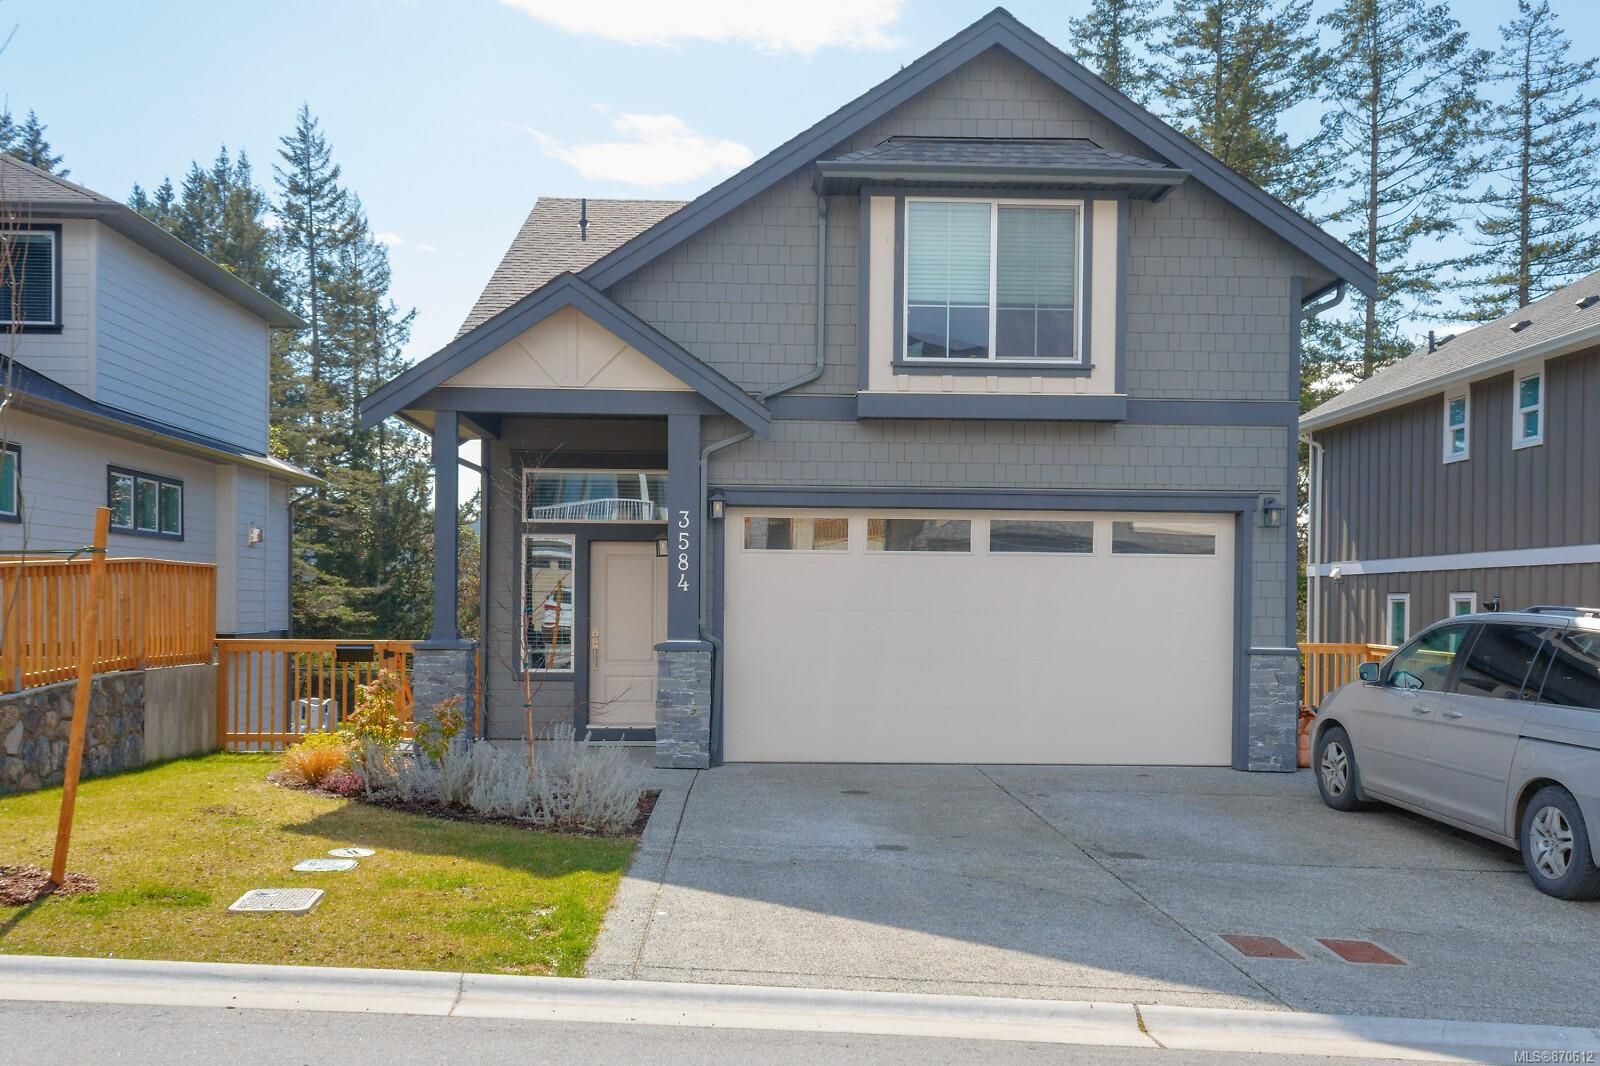 Main Photo: 3584 Honeycrisp Ave in : La Happy Valley House for sale (Langford)  : MLS®# 870612